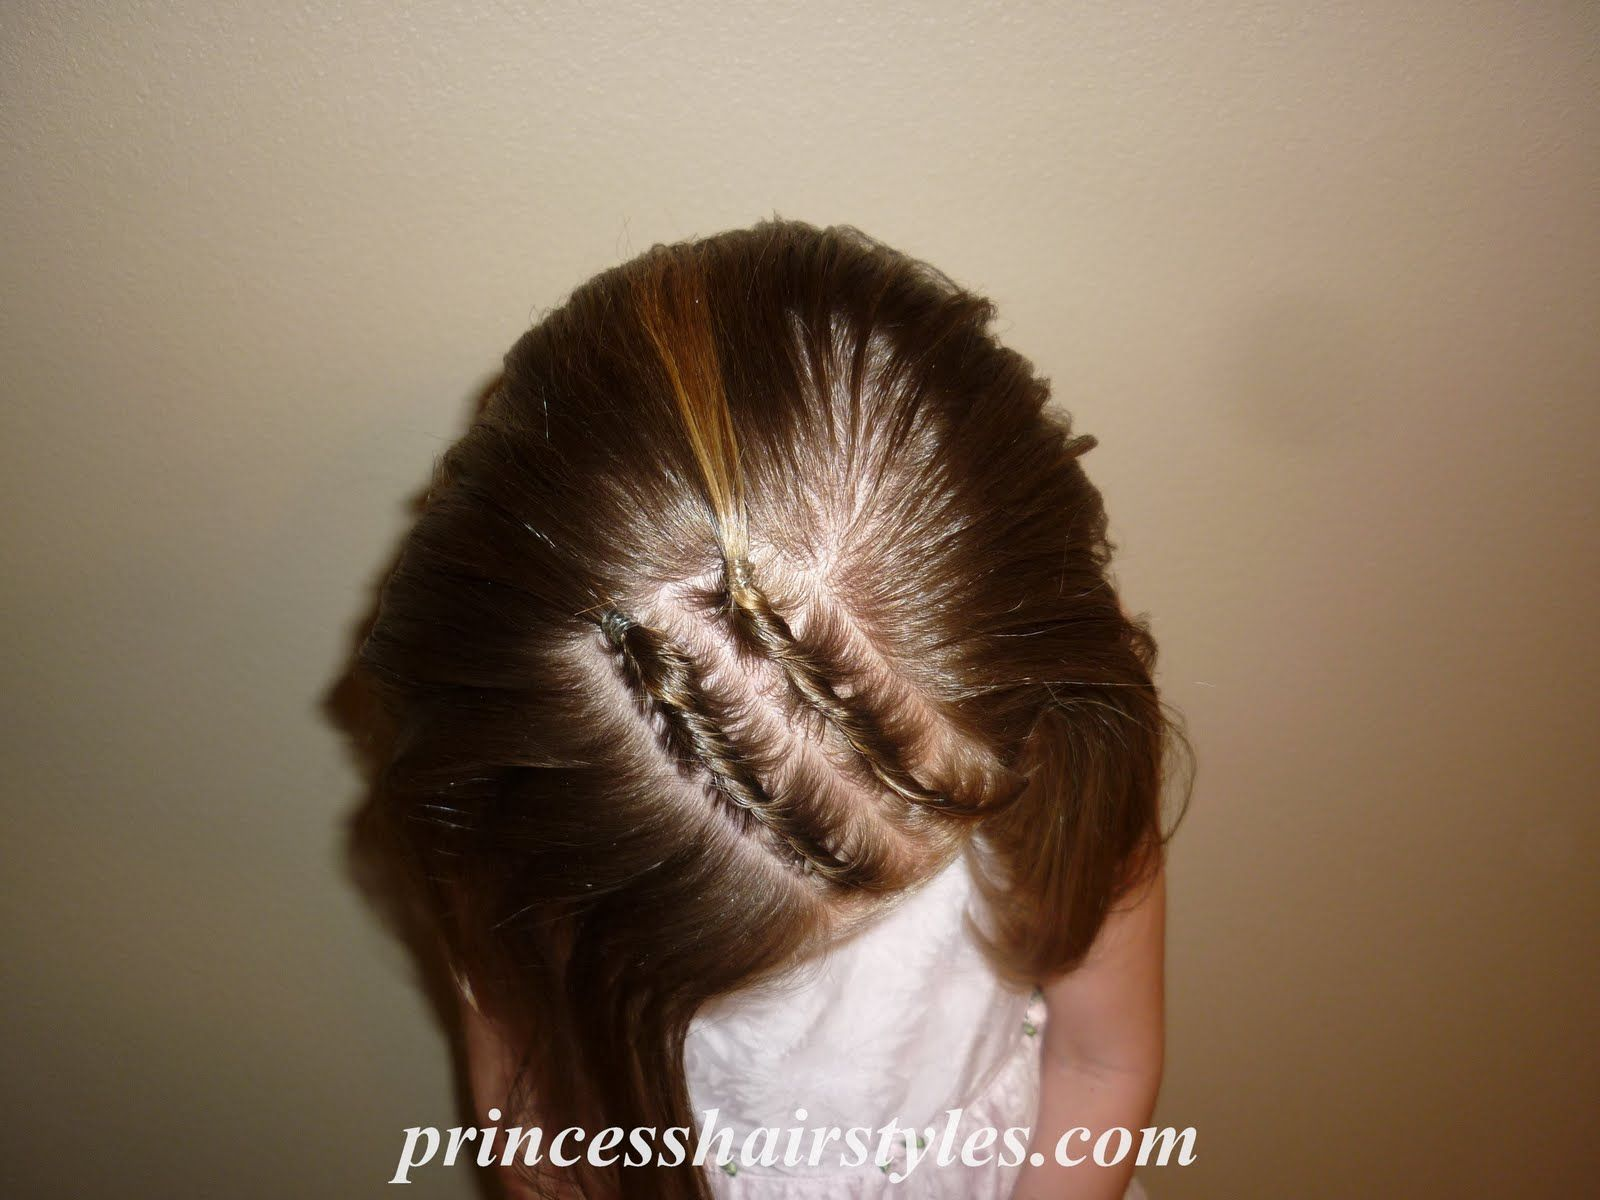 Hairstyles For Girls Princess Hairstyles Twist Hairstyles Hair Videos Hair Videos Tutorials